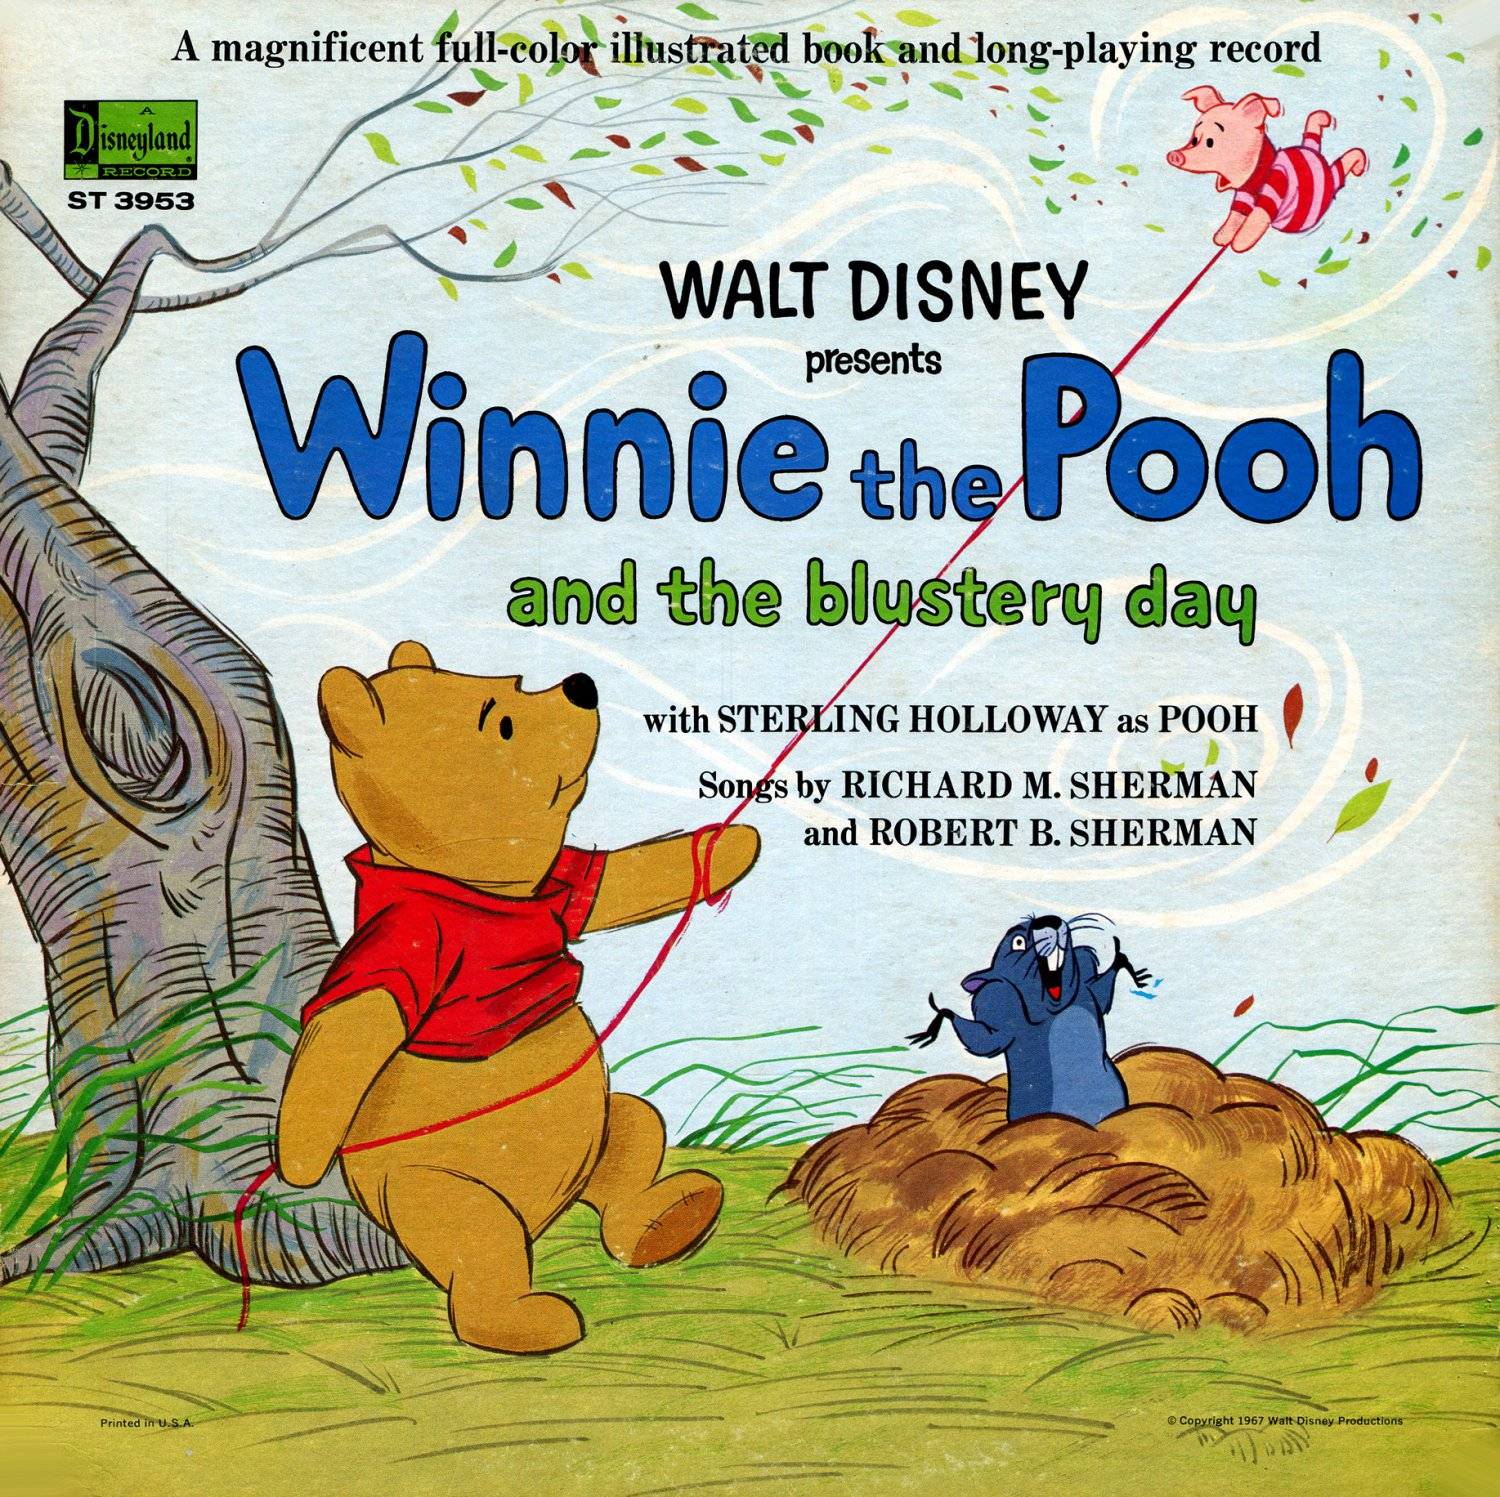 Winnie The Pooh and the Blustery Day - Disney Story Soundtrack, Sherman Brothers LP/CD